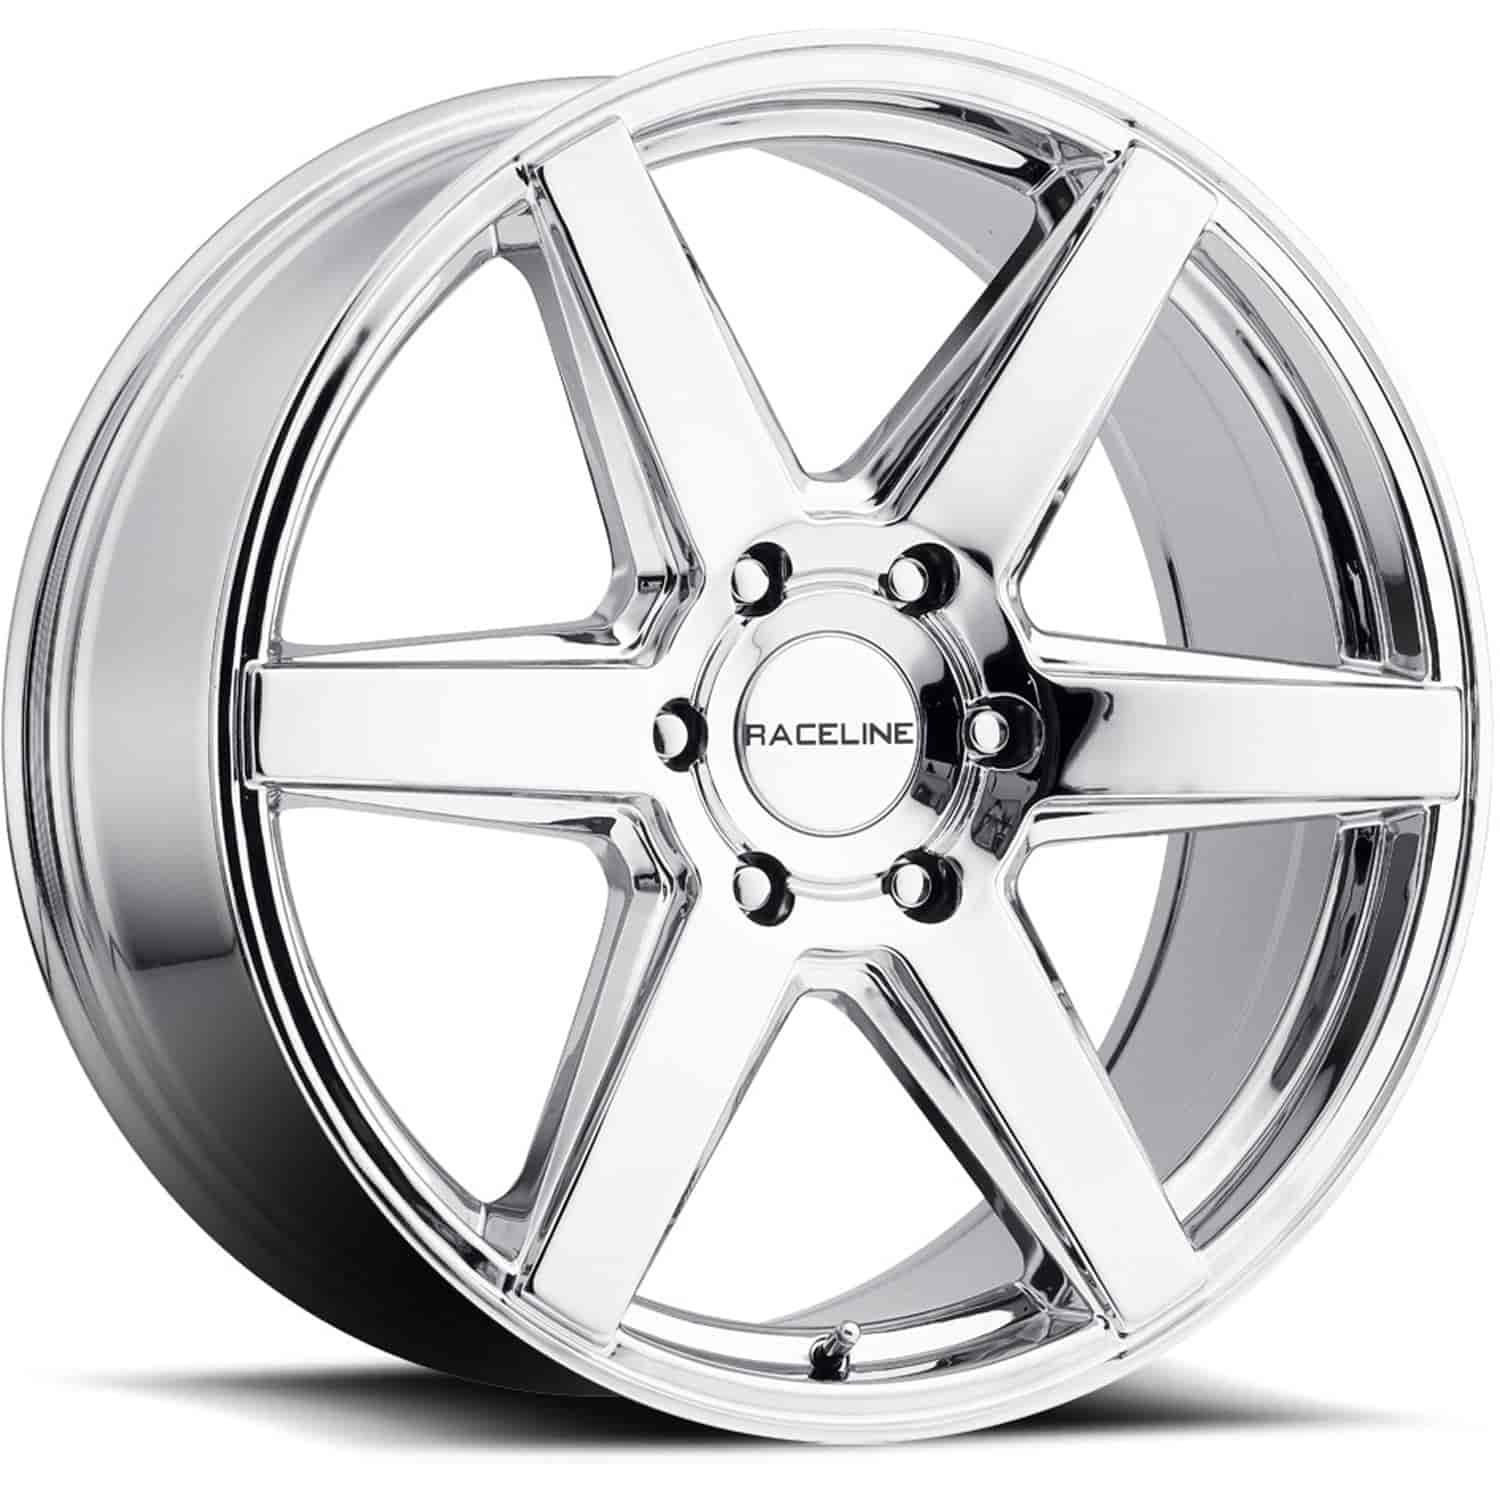 Raceline Wheels 156C8806035